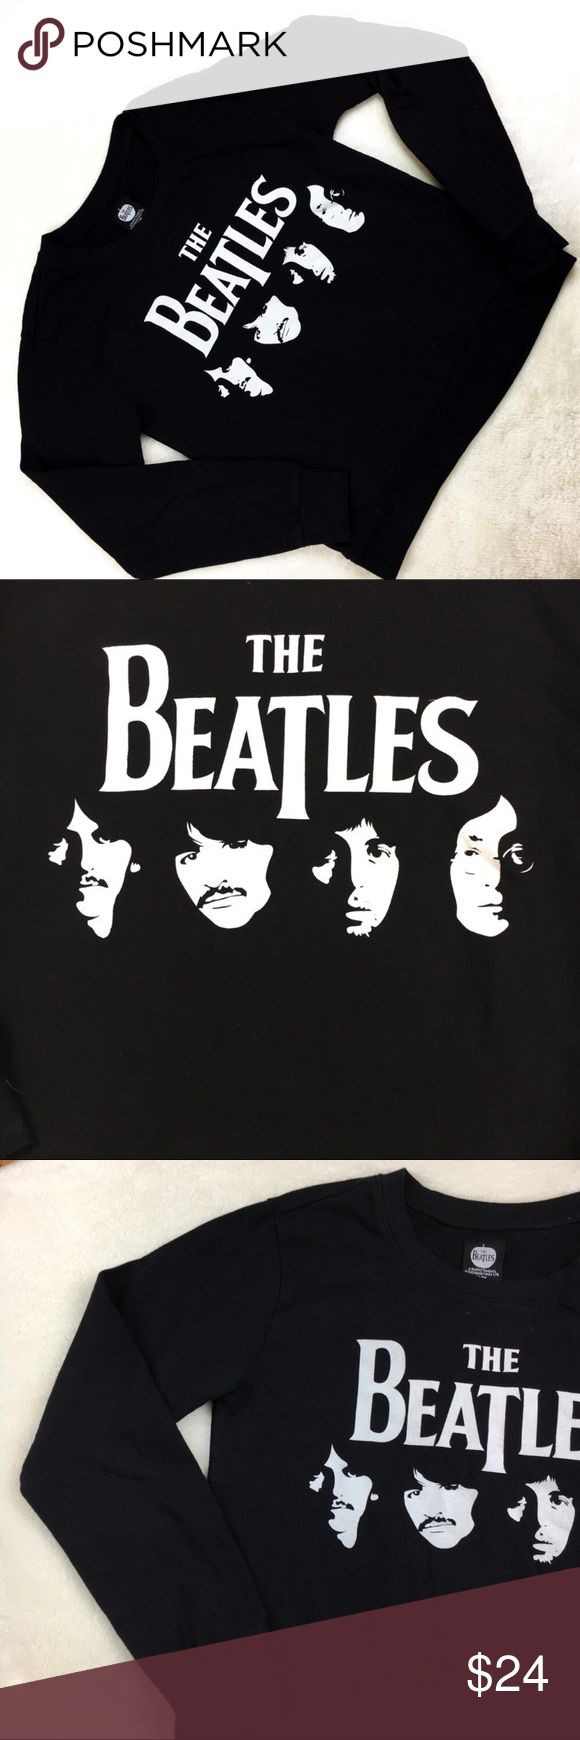 Beatles graphic pull over sweat shirt black medium This sweat shirt is in perfect condition and ready for a new home!  Approx measurements are: length 23 inches bust 38 inches the beatles Sweaters